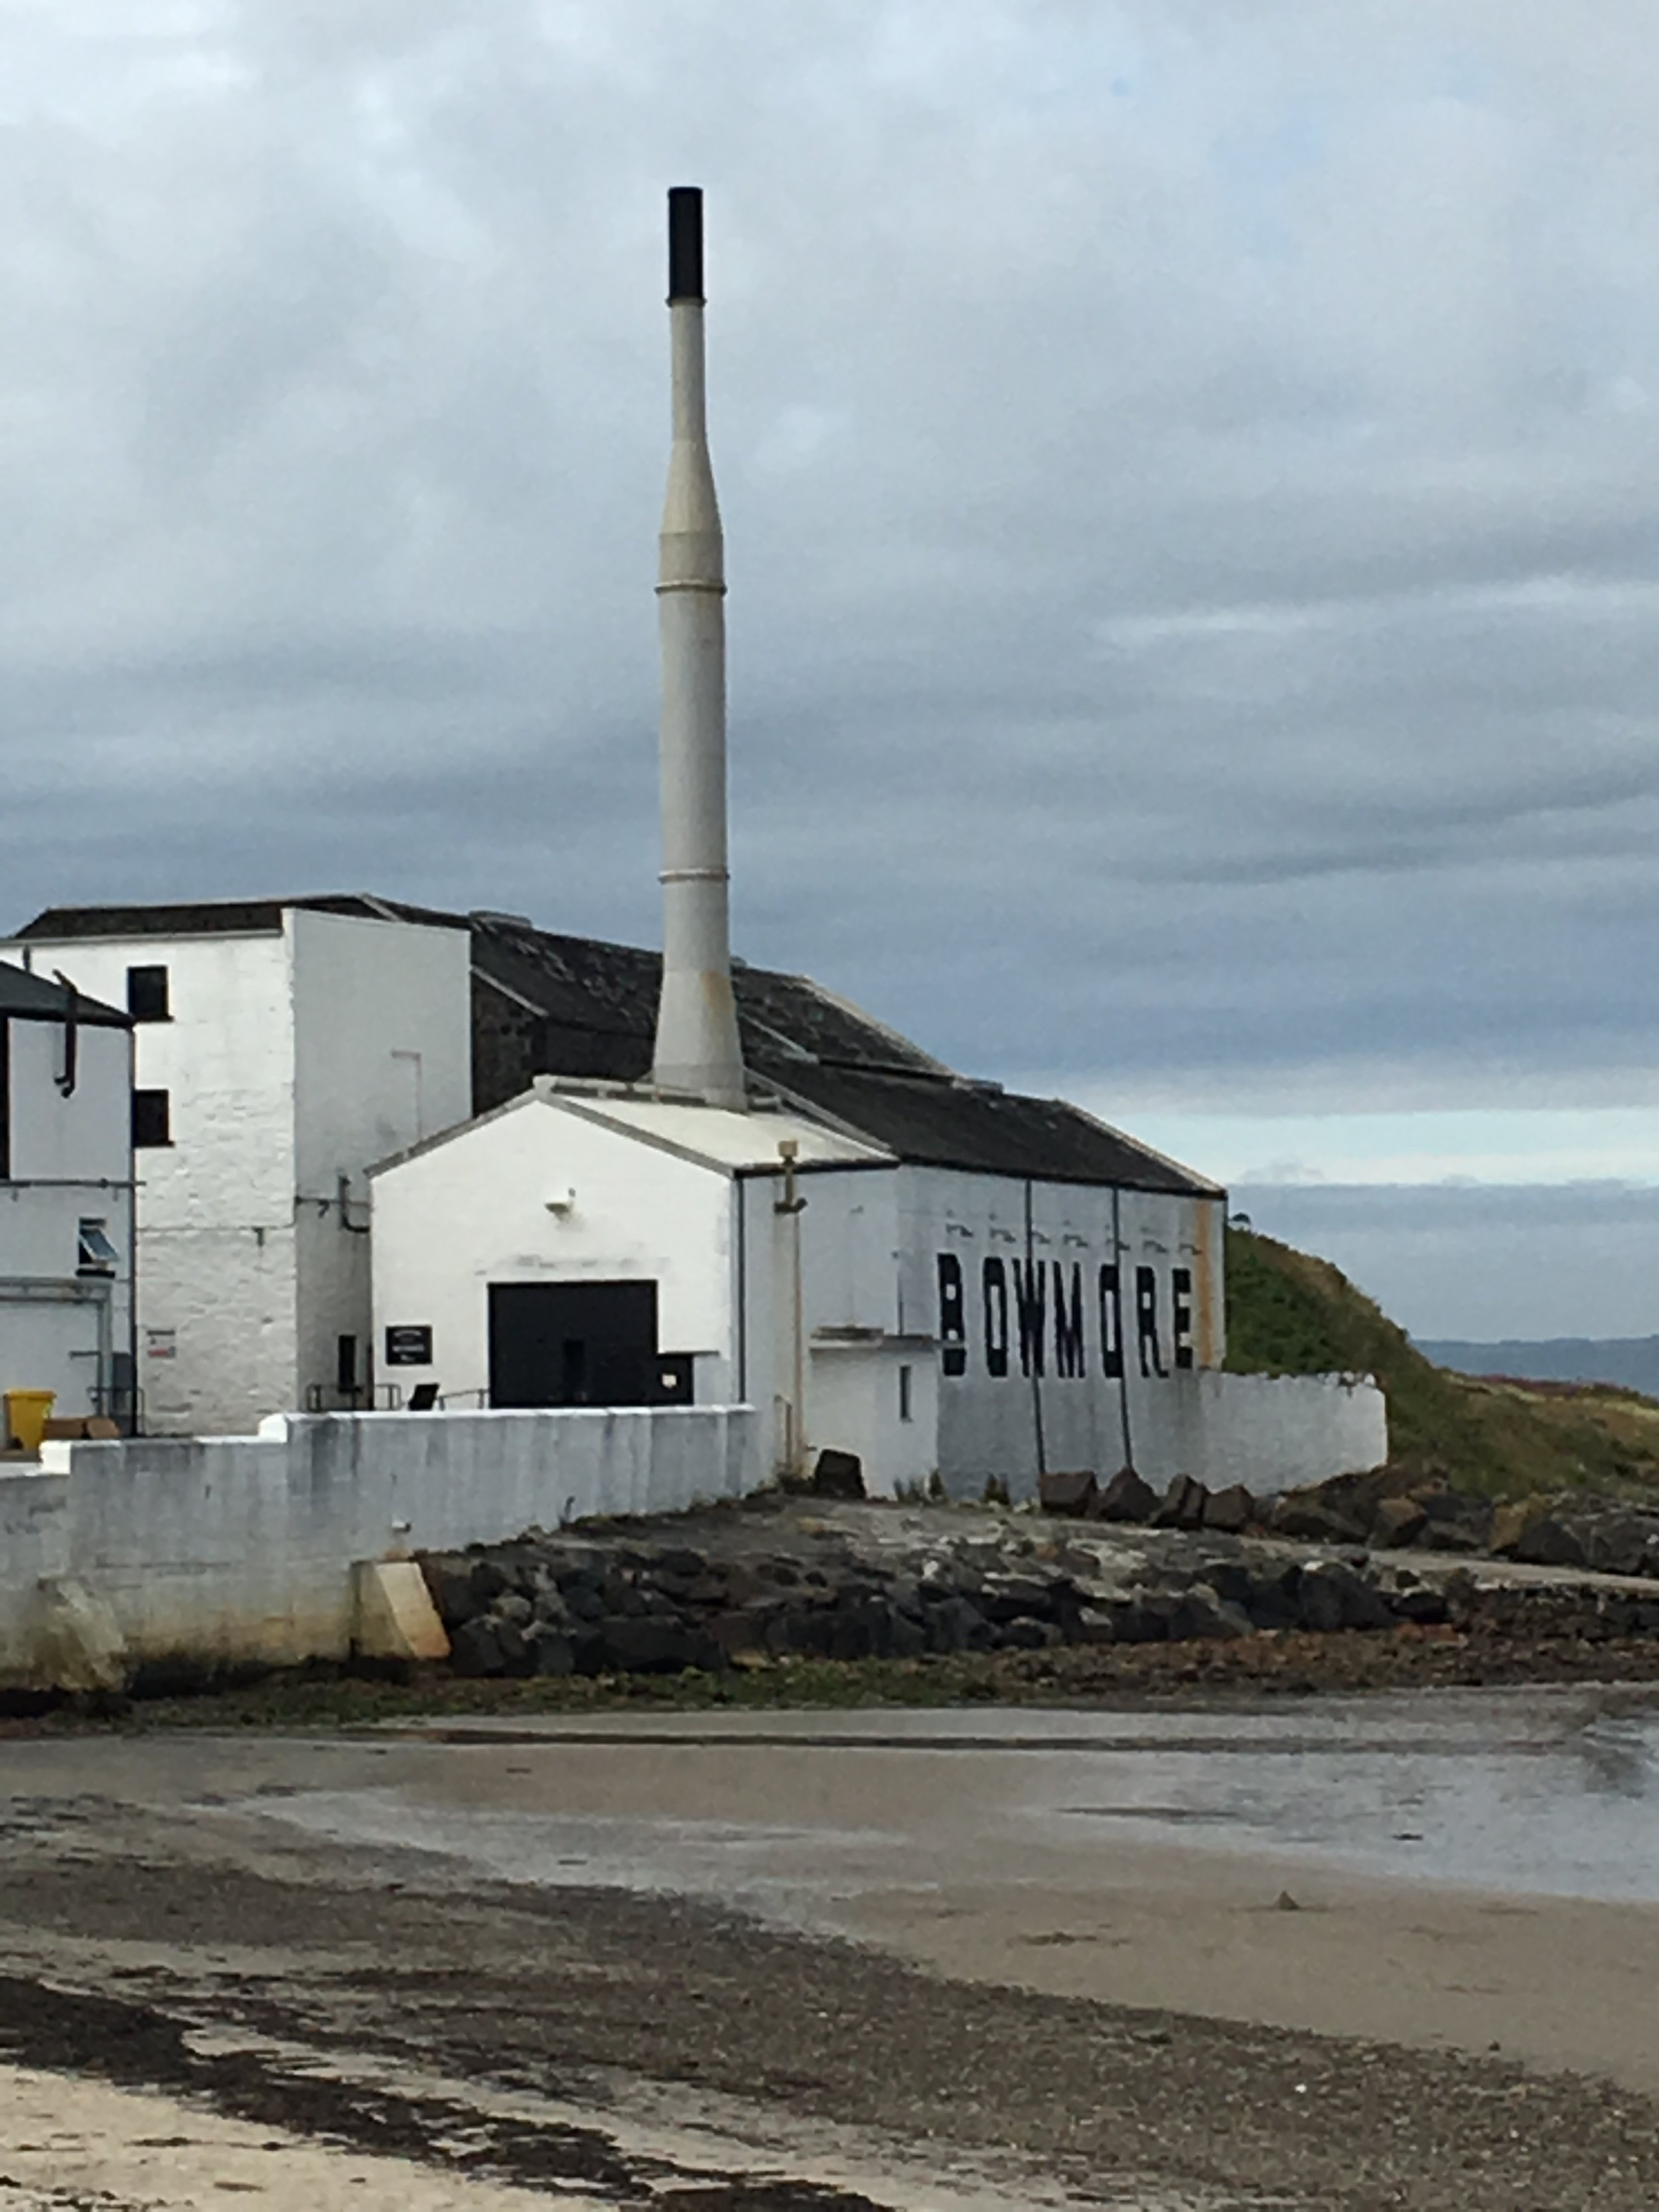 View of Bowmore Distillery from the beach on Islay